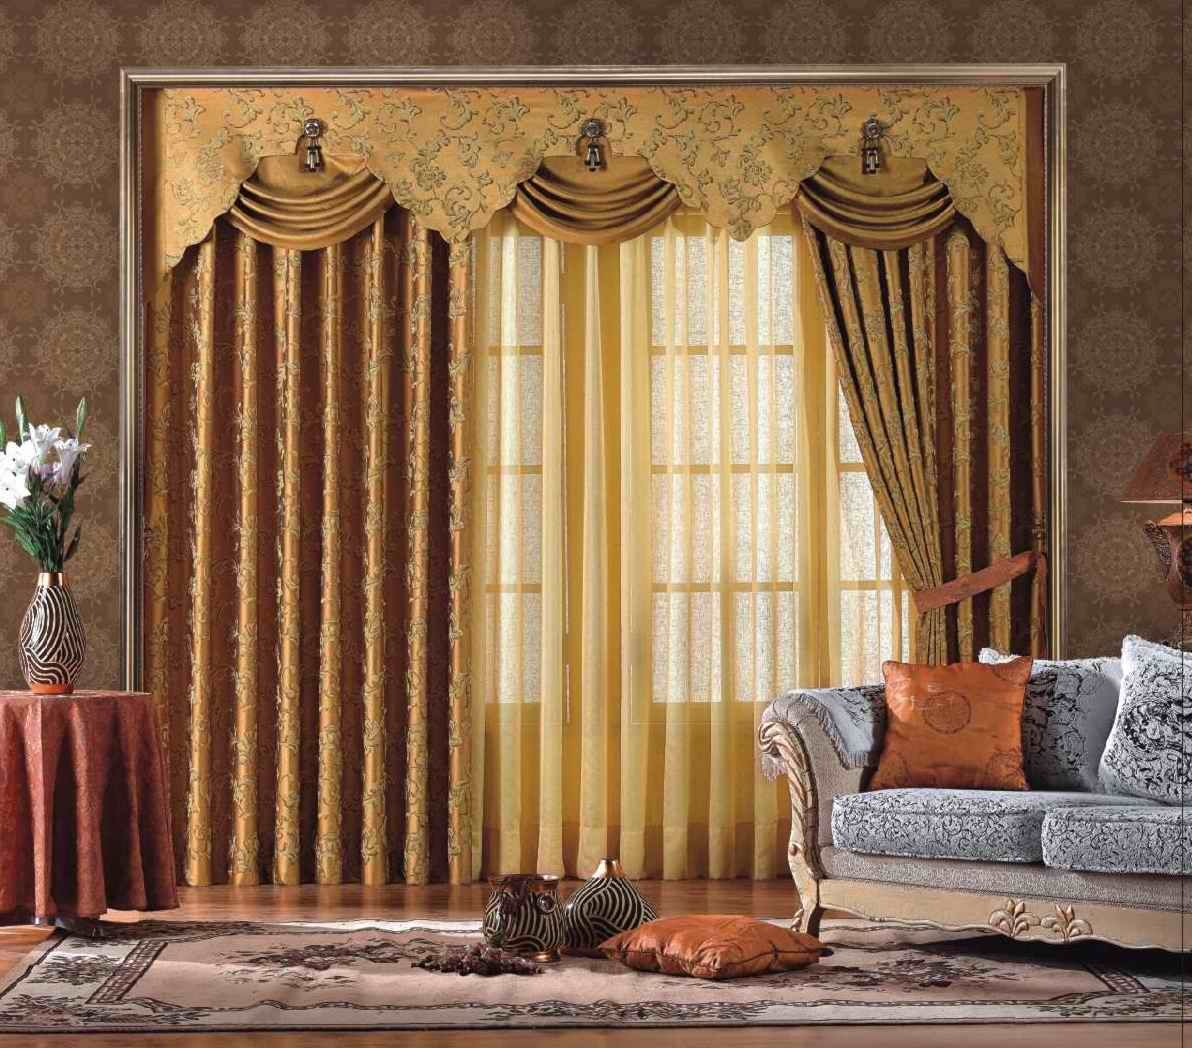 Living Room Curtain Design Gorgeous Architecture  Living Room Curtains With Valance Sutntljr Gorgeous Inspiration Design